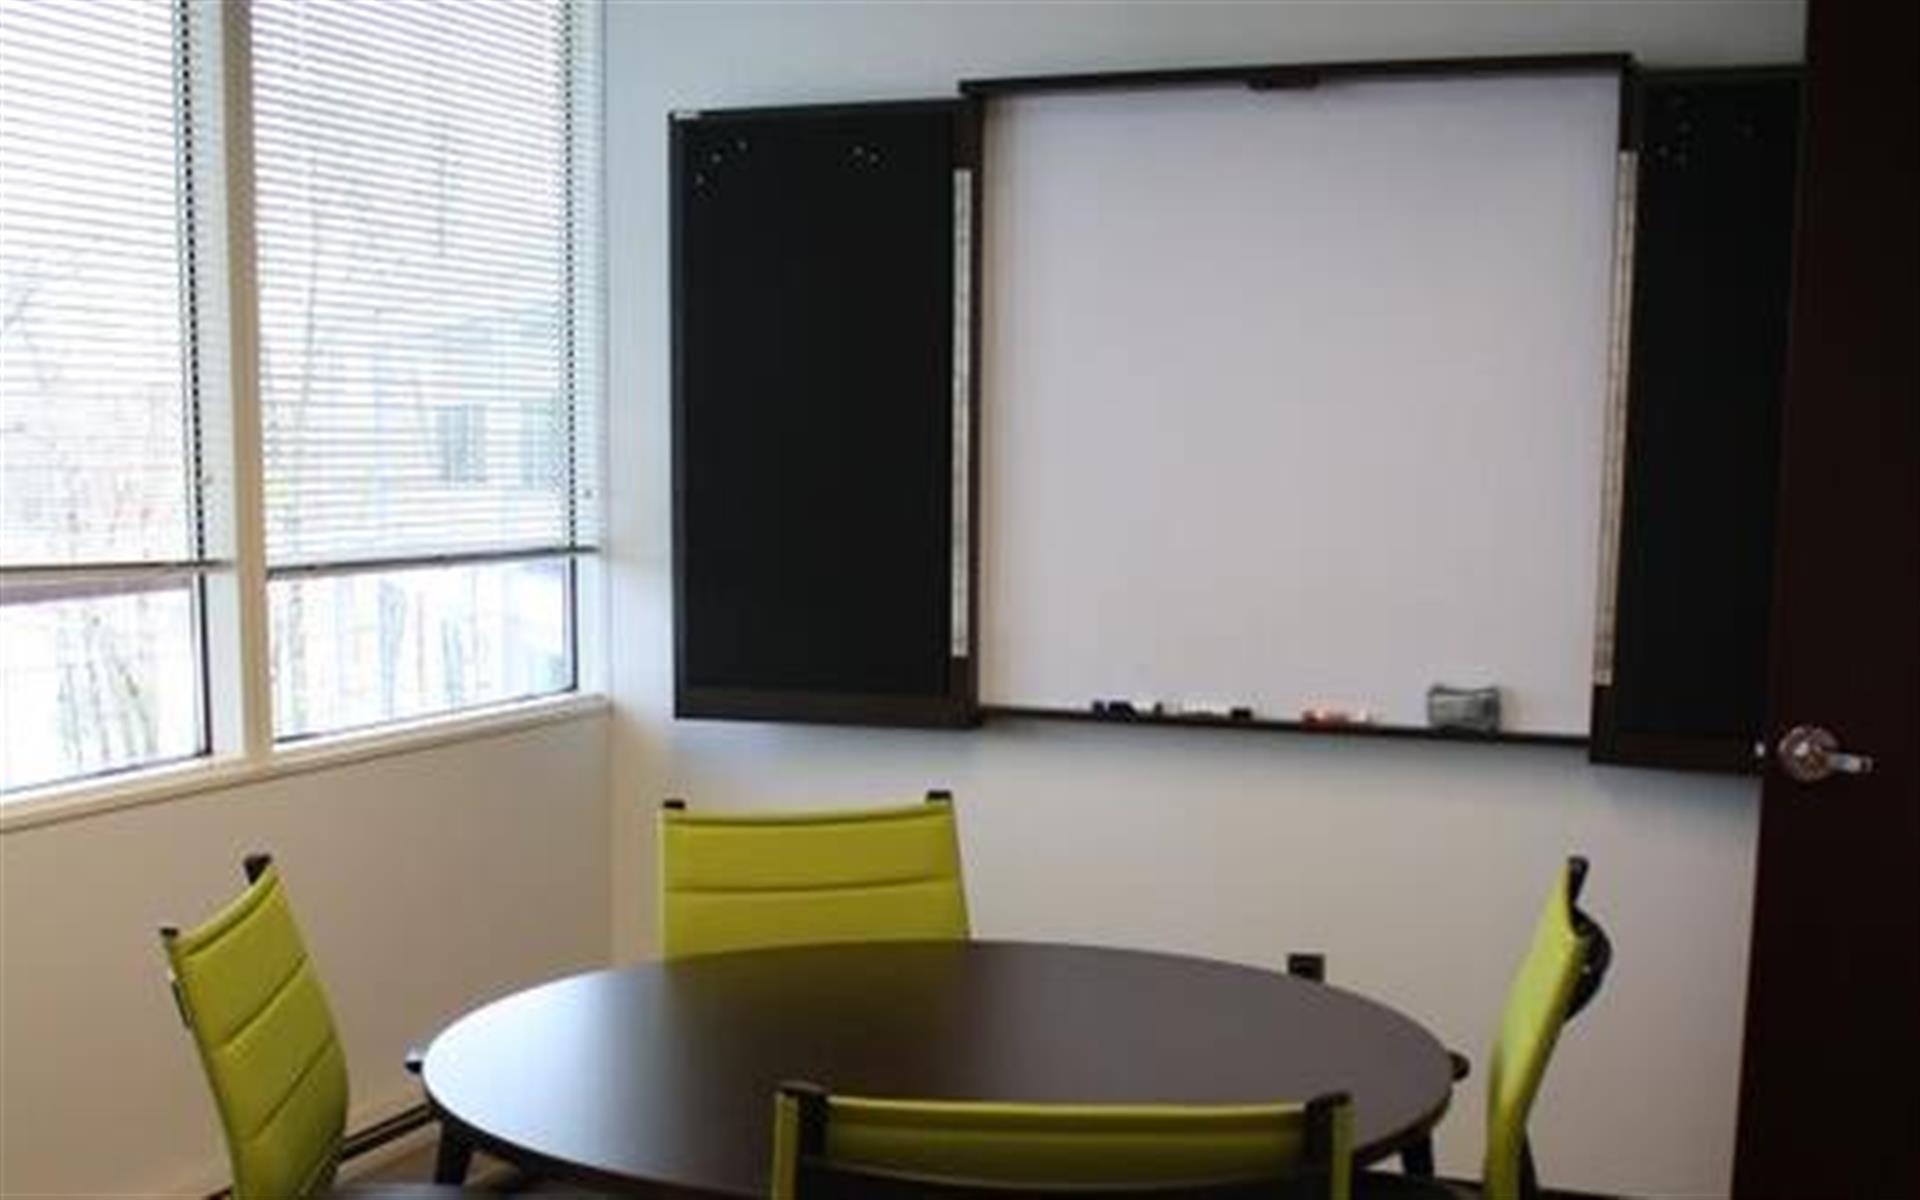 CollaborationCore - Huddle Room with Sanctuary view